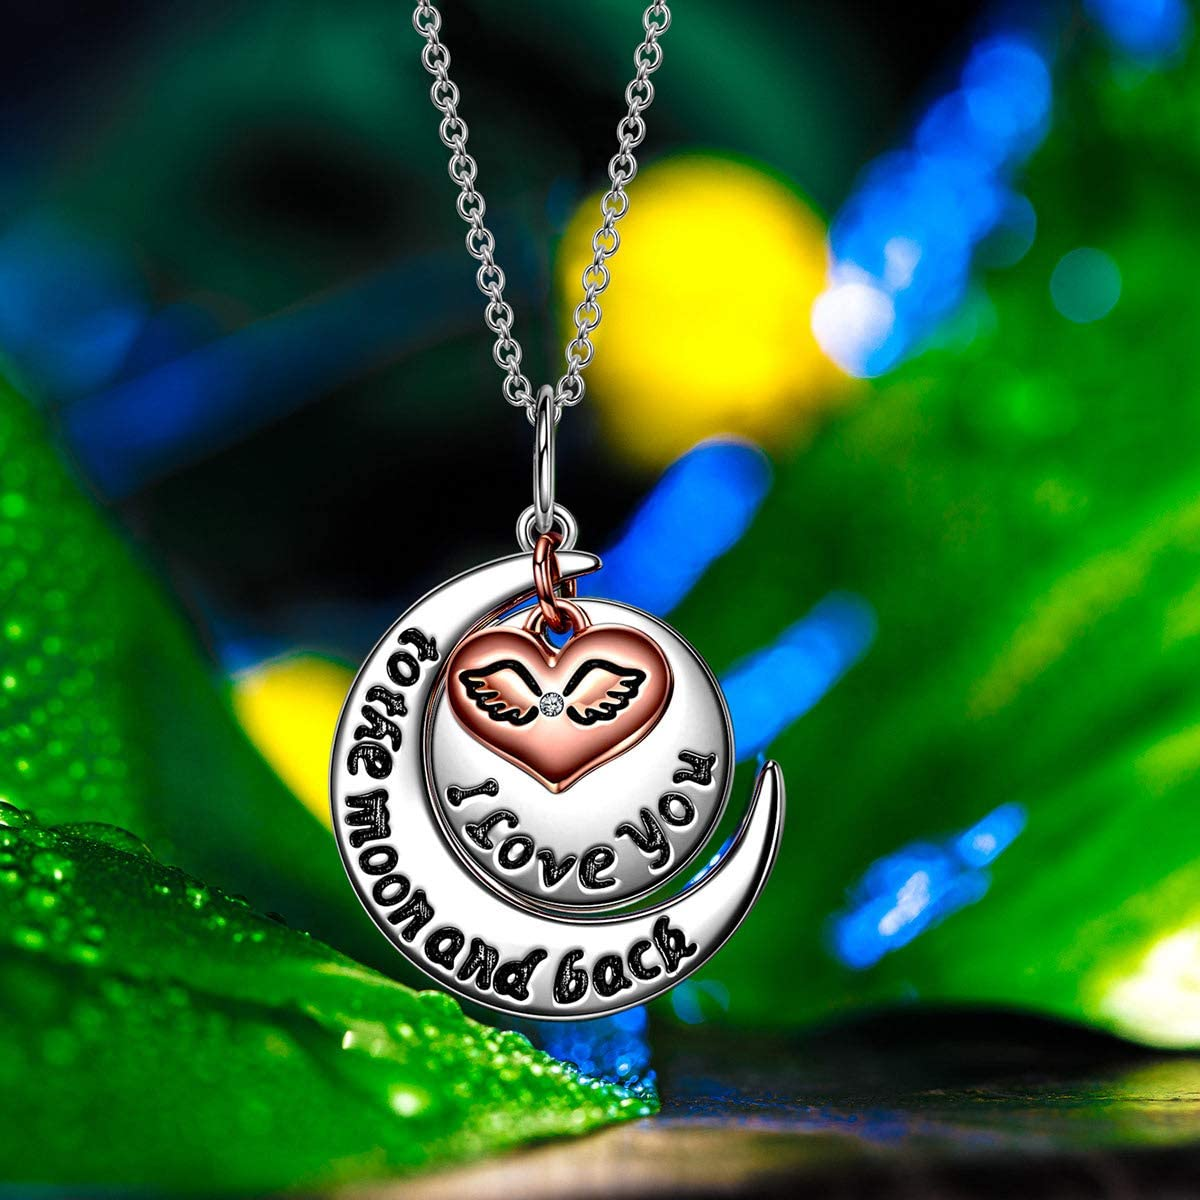 NINA MISS /♥I Love You to The Moon and Back Women Christmas Necklace Gifts 925 Sterling Silver Rose Gold Plated Charming Jewelry Gifts for Girlfriend